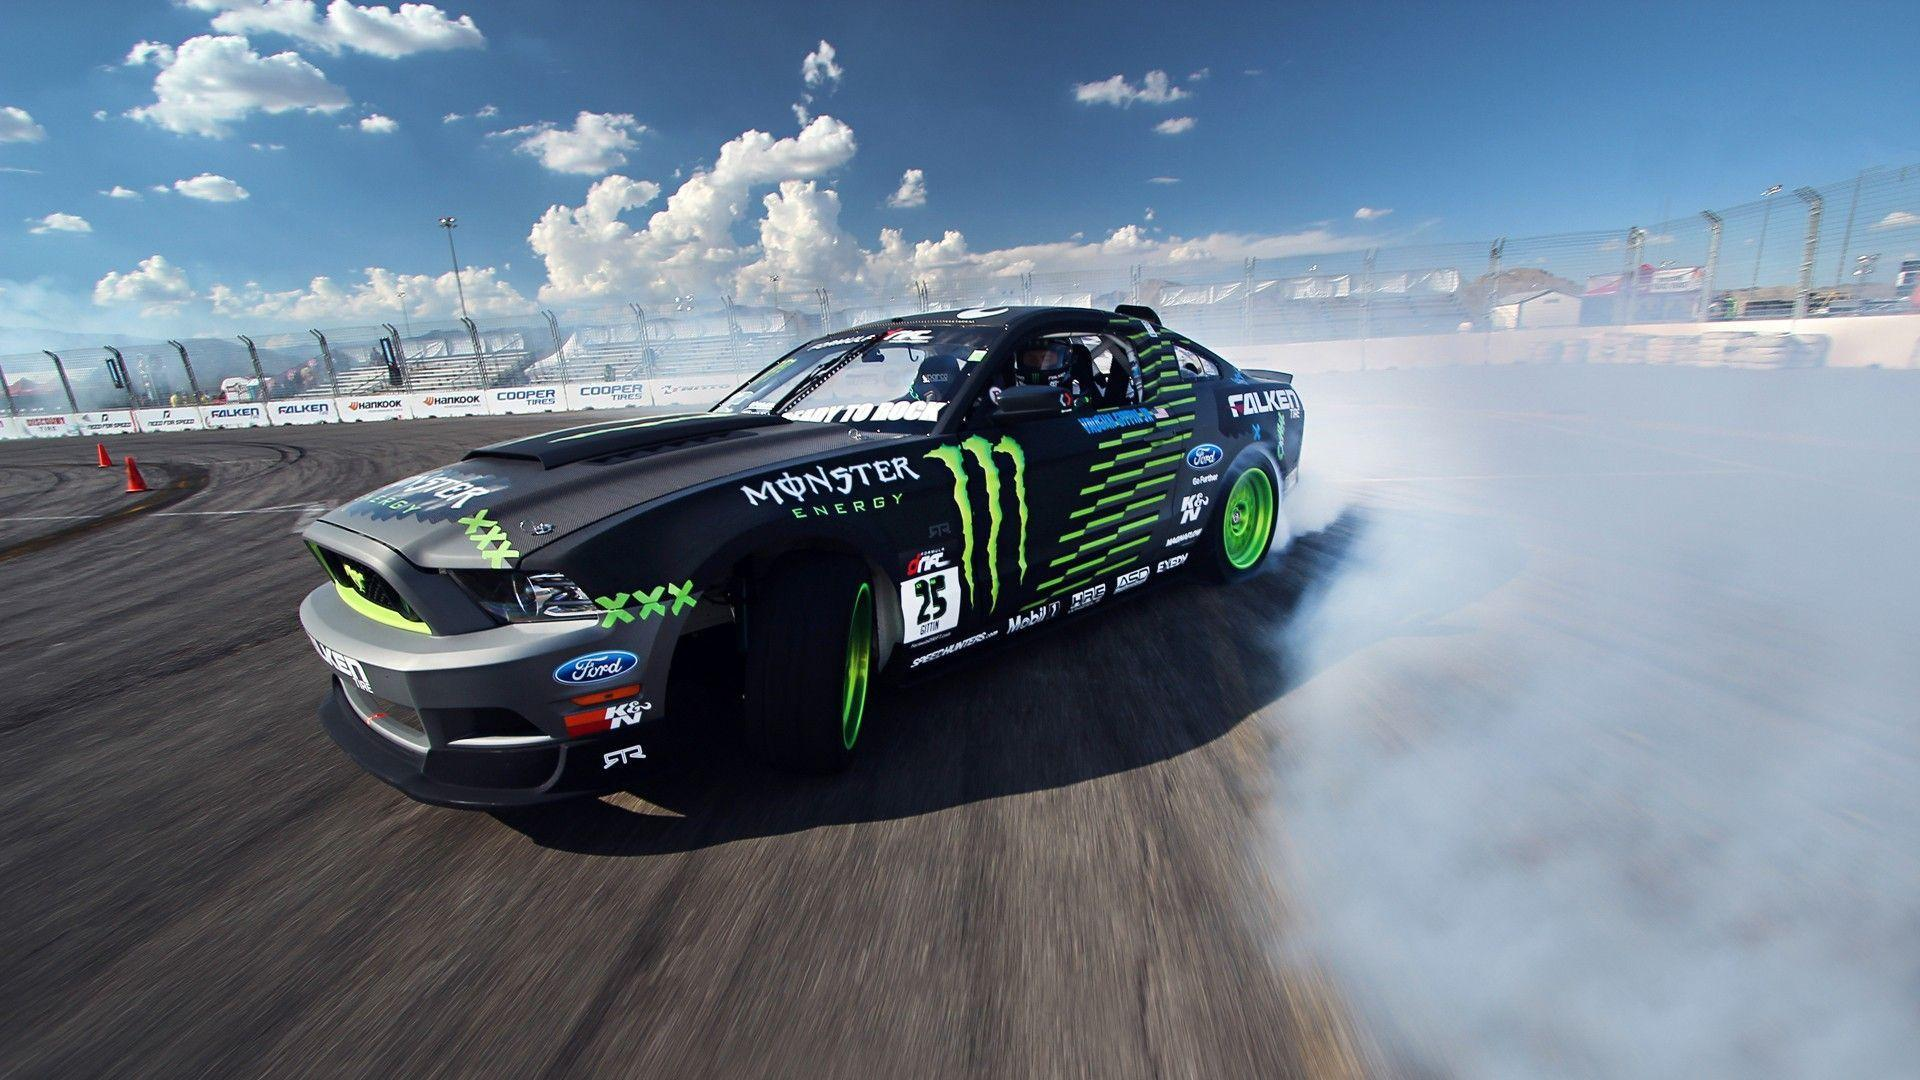 Ford Mustang, Monster Energy, Drift Wallpapers HD / Desktop and